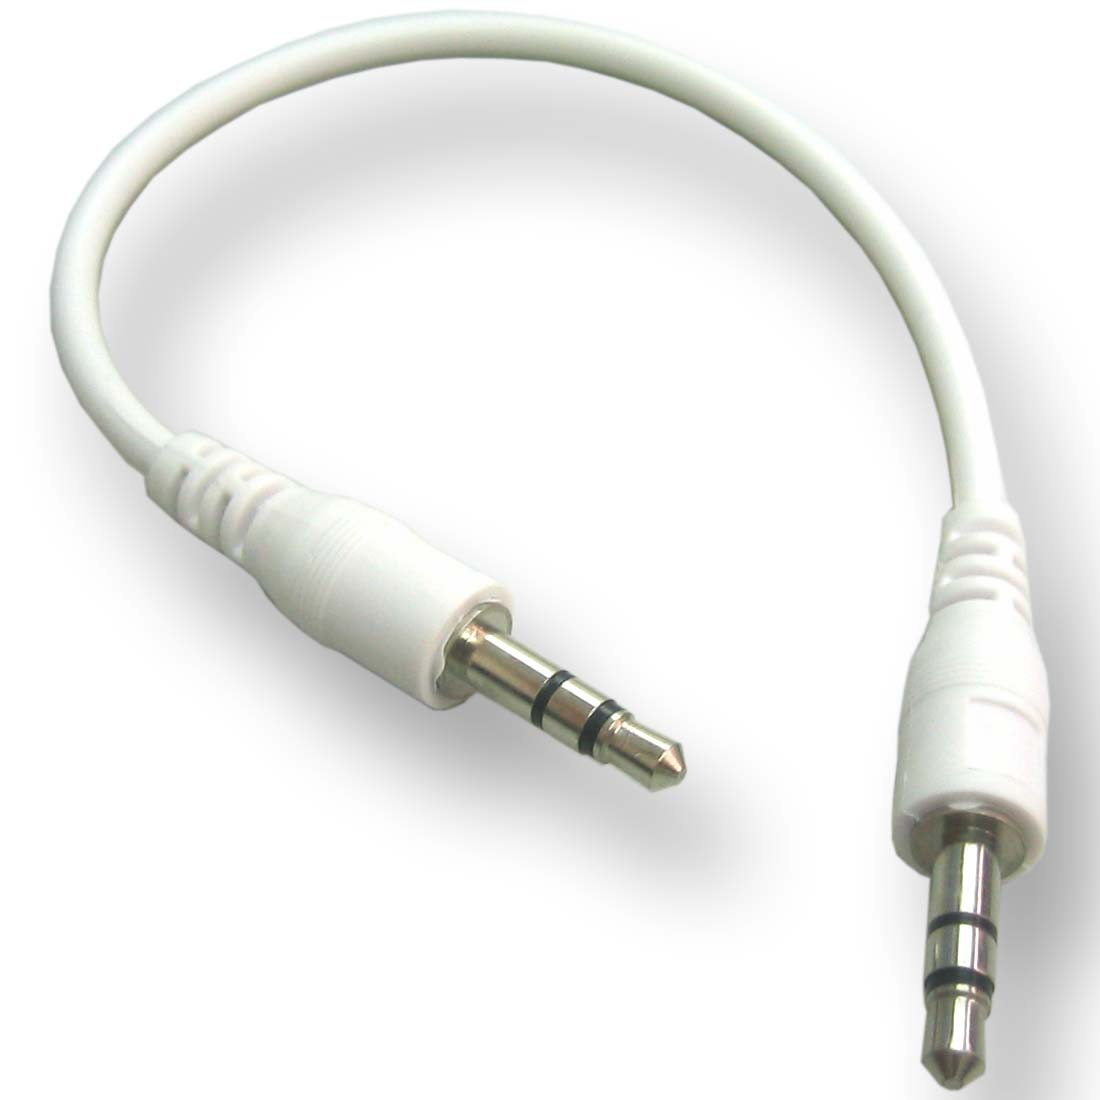 Aux Cable Help Ilounge Forums Wiring Http Imgalibabacom Photo 1173050sion